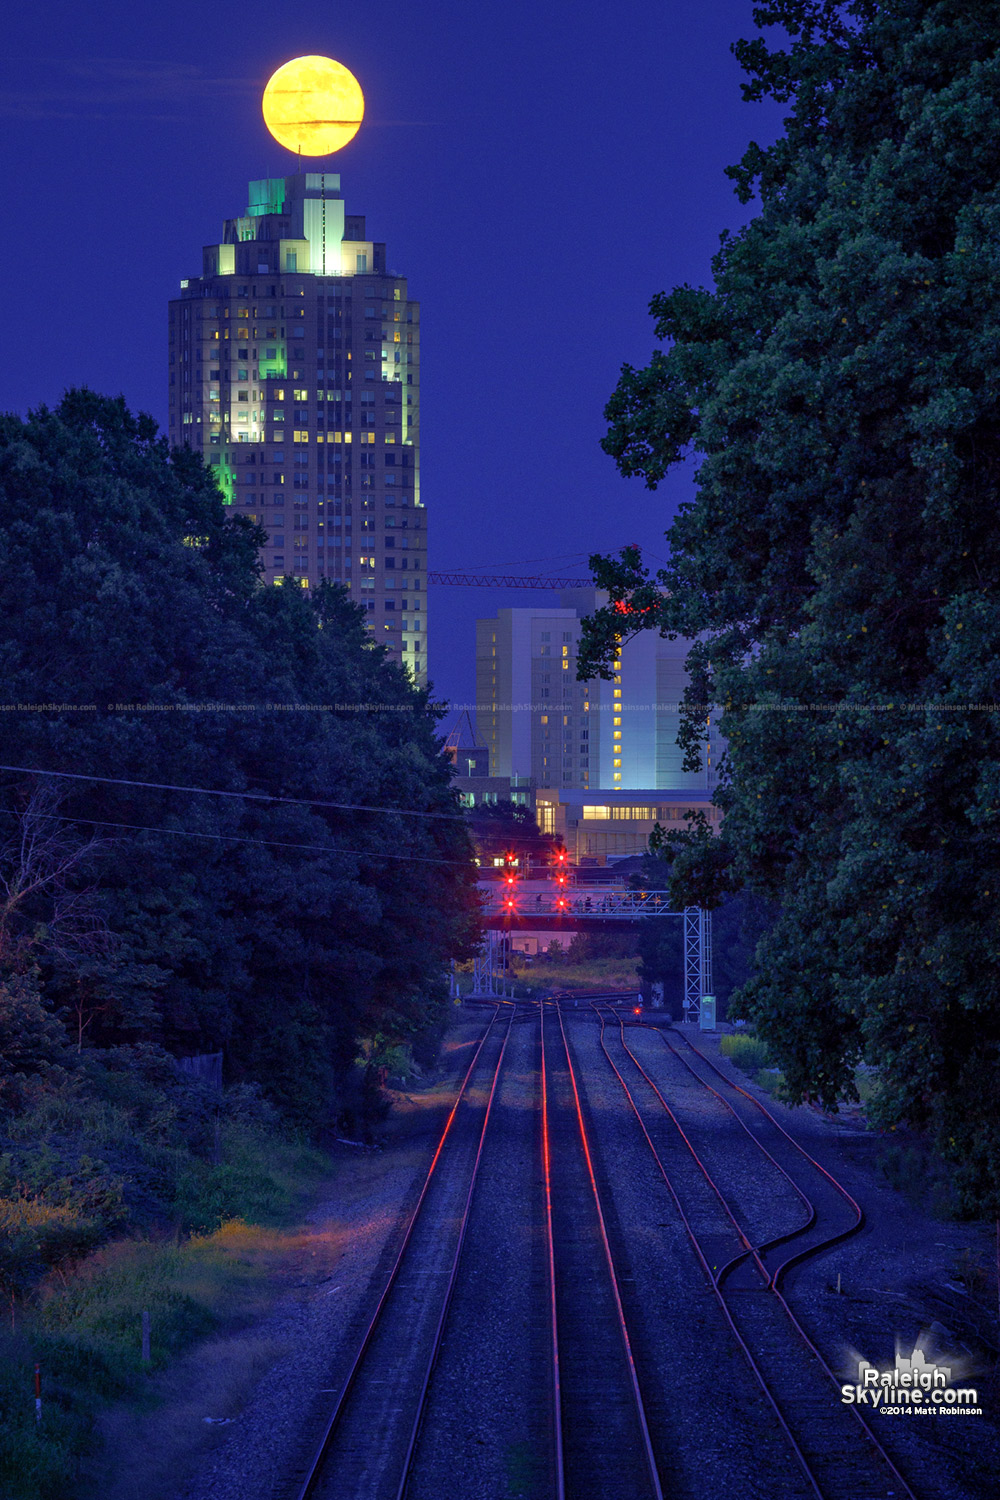 Supermoon rise over Railroad tracks